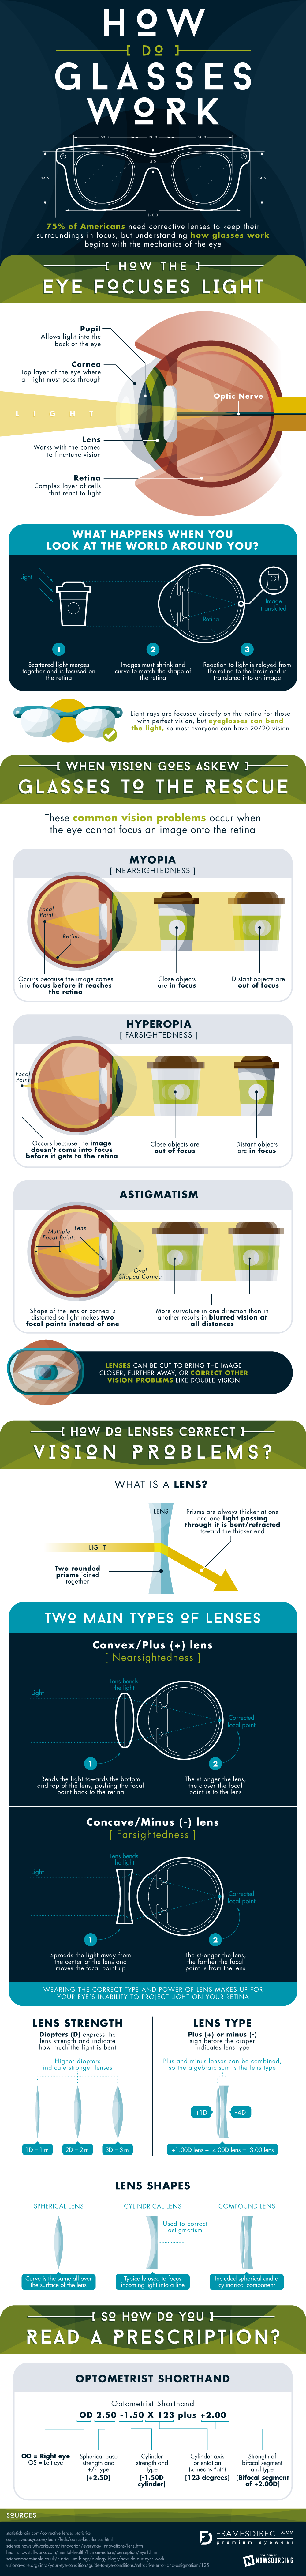 How Do Glasses Work Infographic